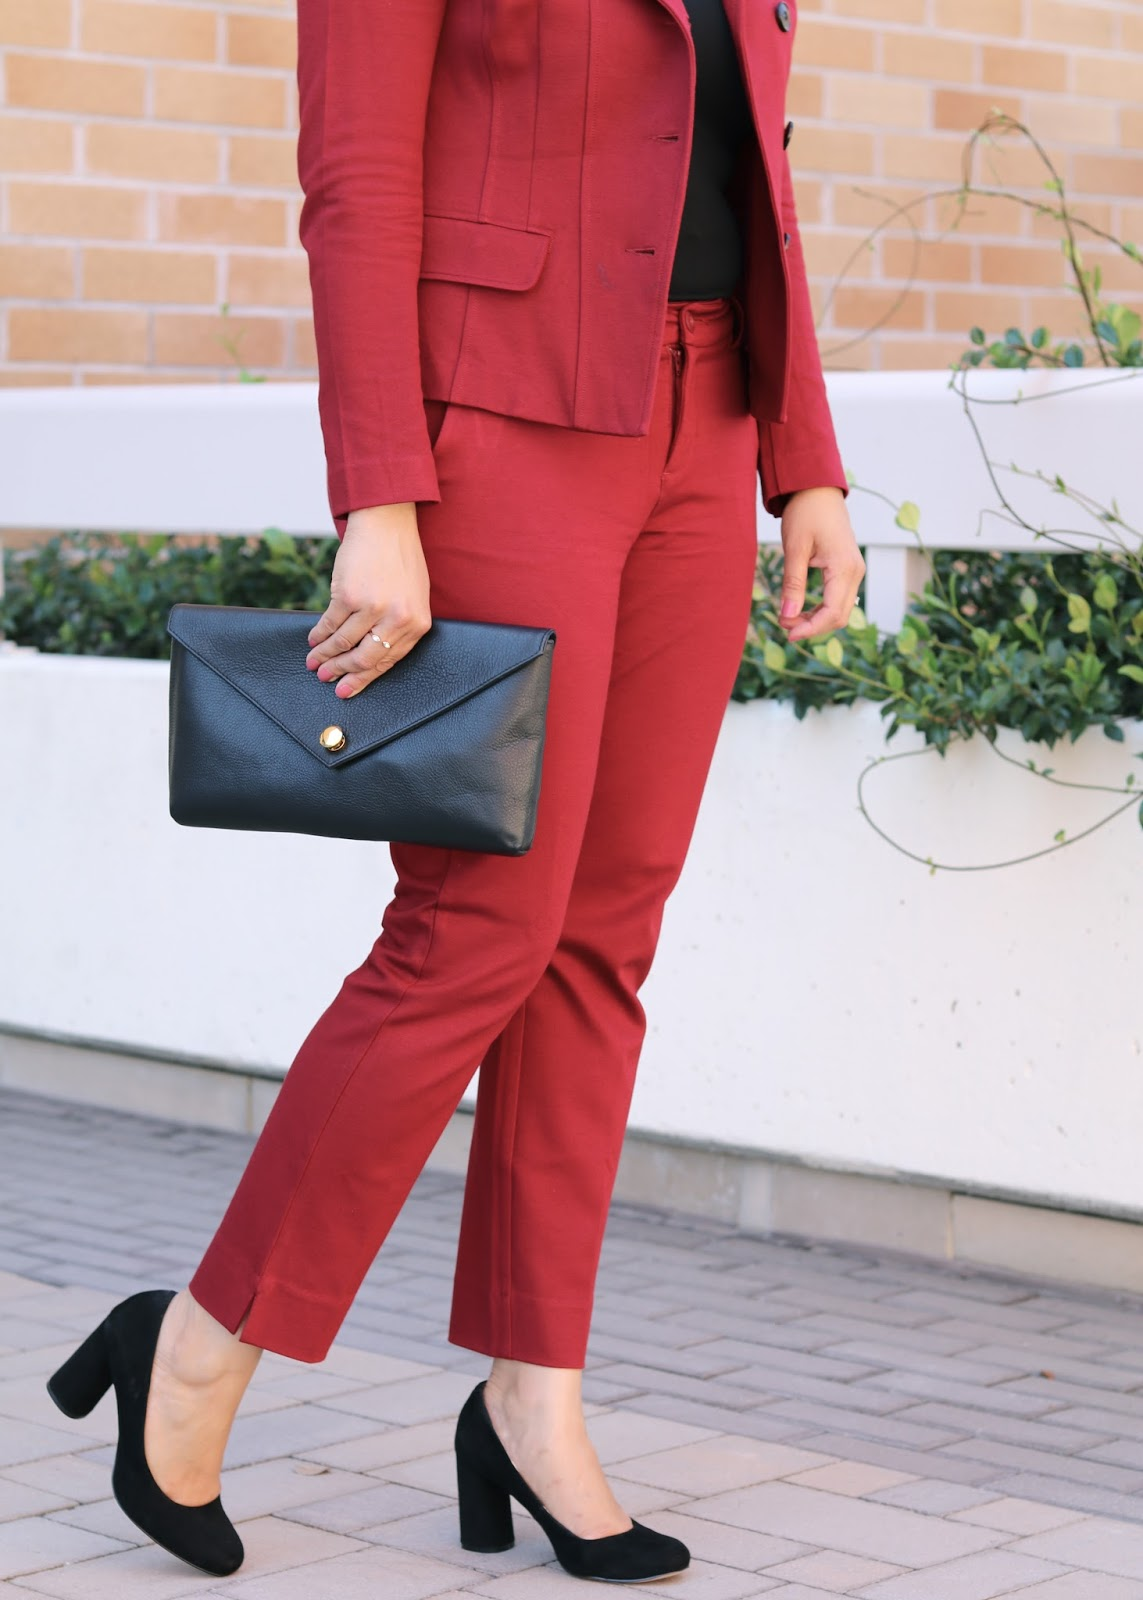 Fall Burgundy Suit with black accessories, black stacked heels, black heels for fall 2016, linell ellis black clutch, black clutch in a burgundy suit, fitted suit for women